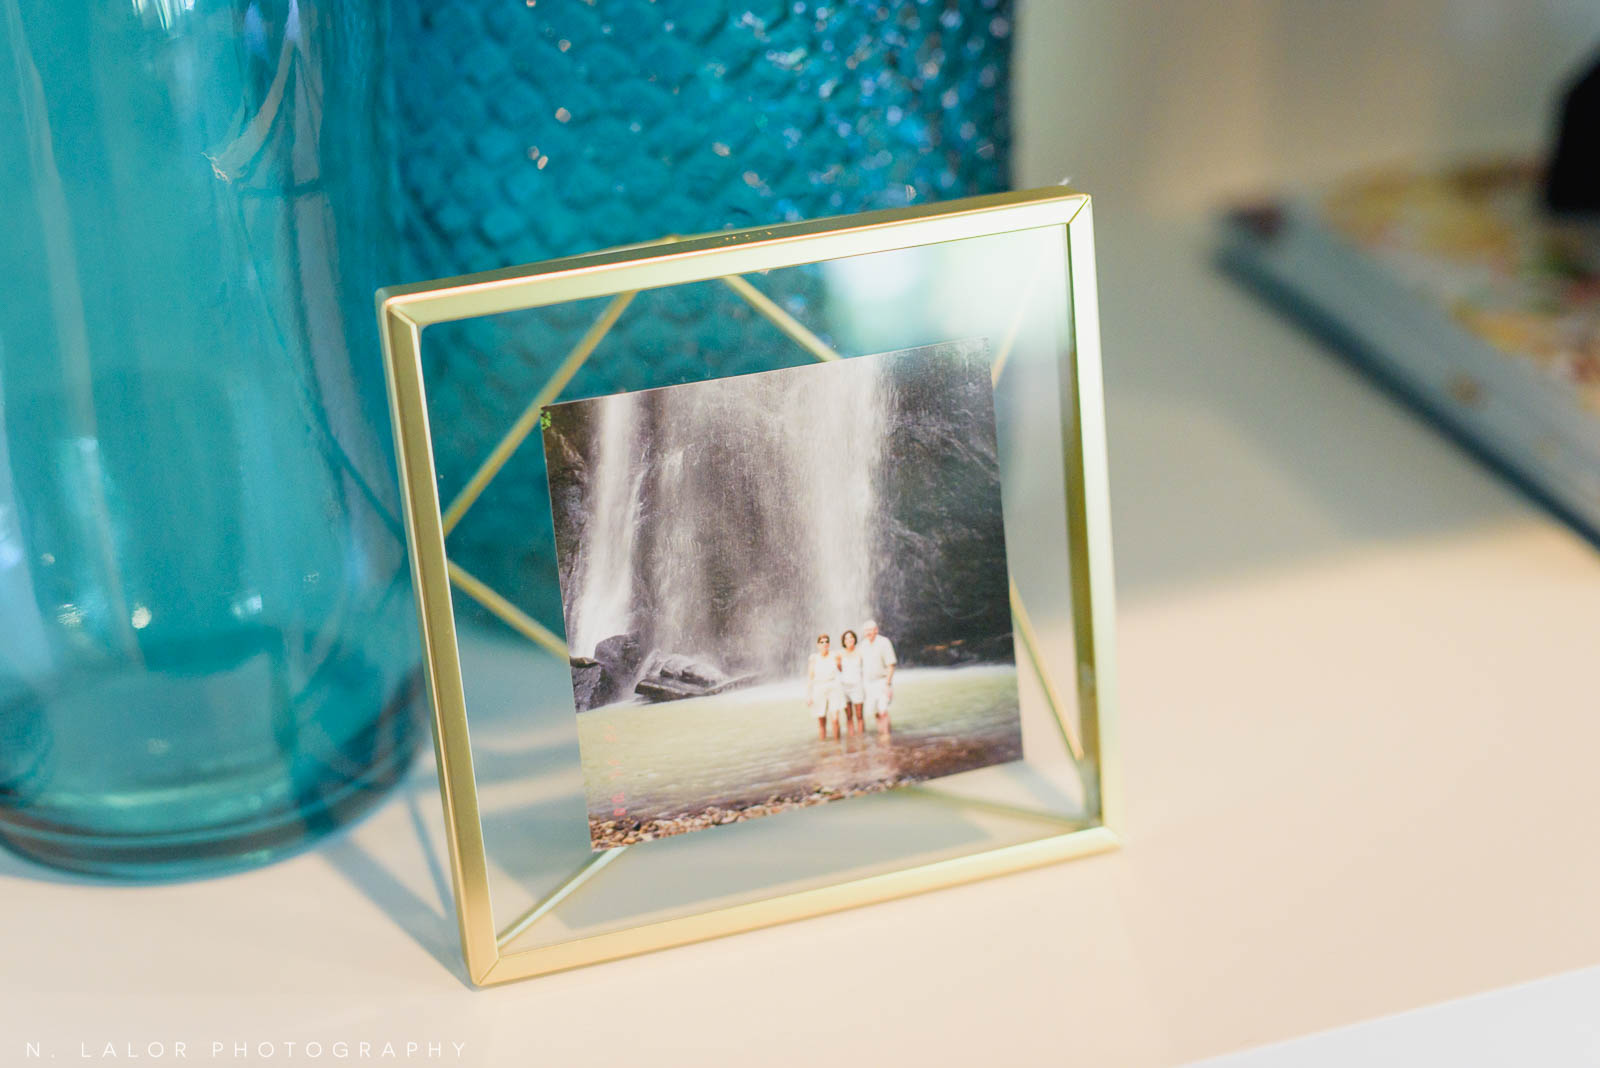 Image of vacation photo in beautiful glass frame on table. Photography by N. Lalor Photography. Studio in Greenwich, Connecticut.